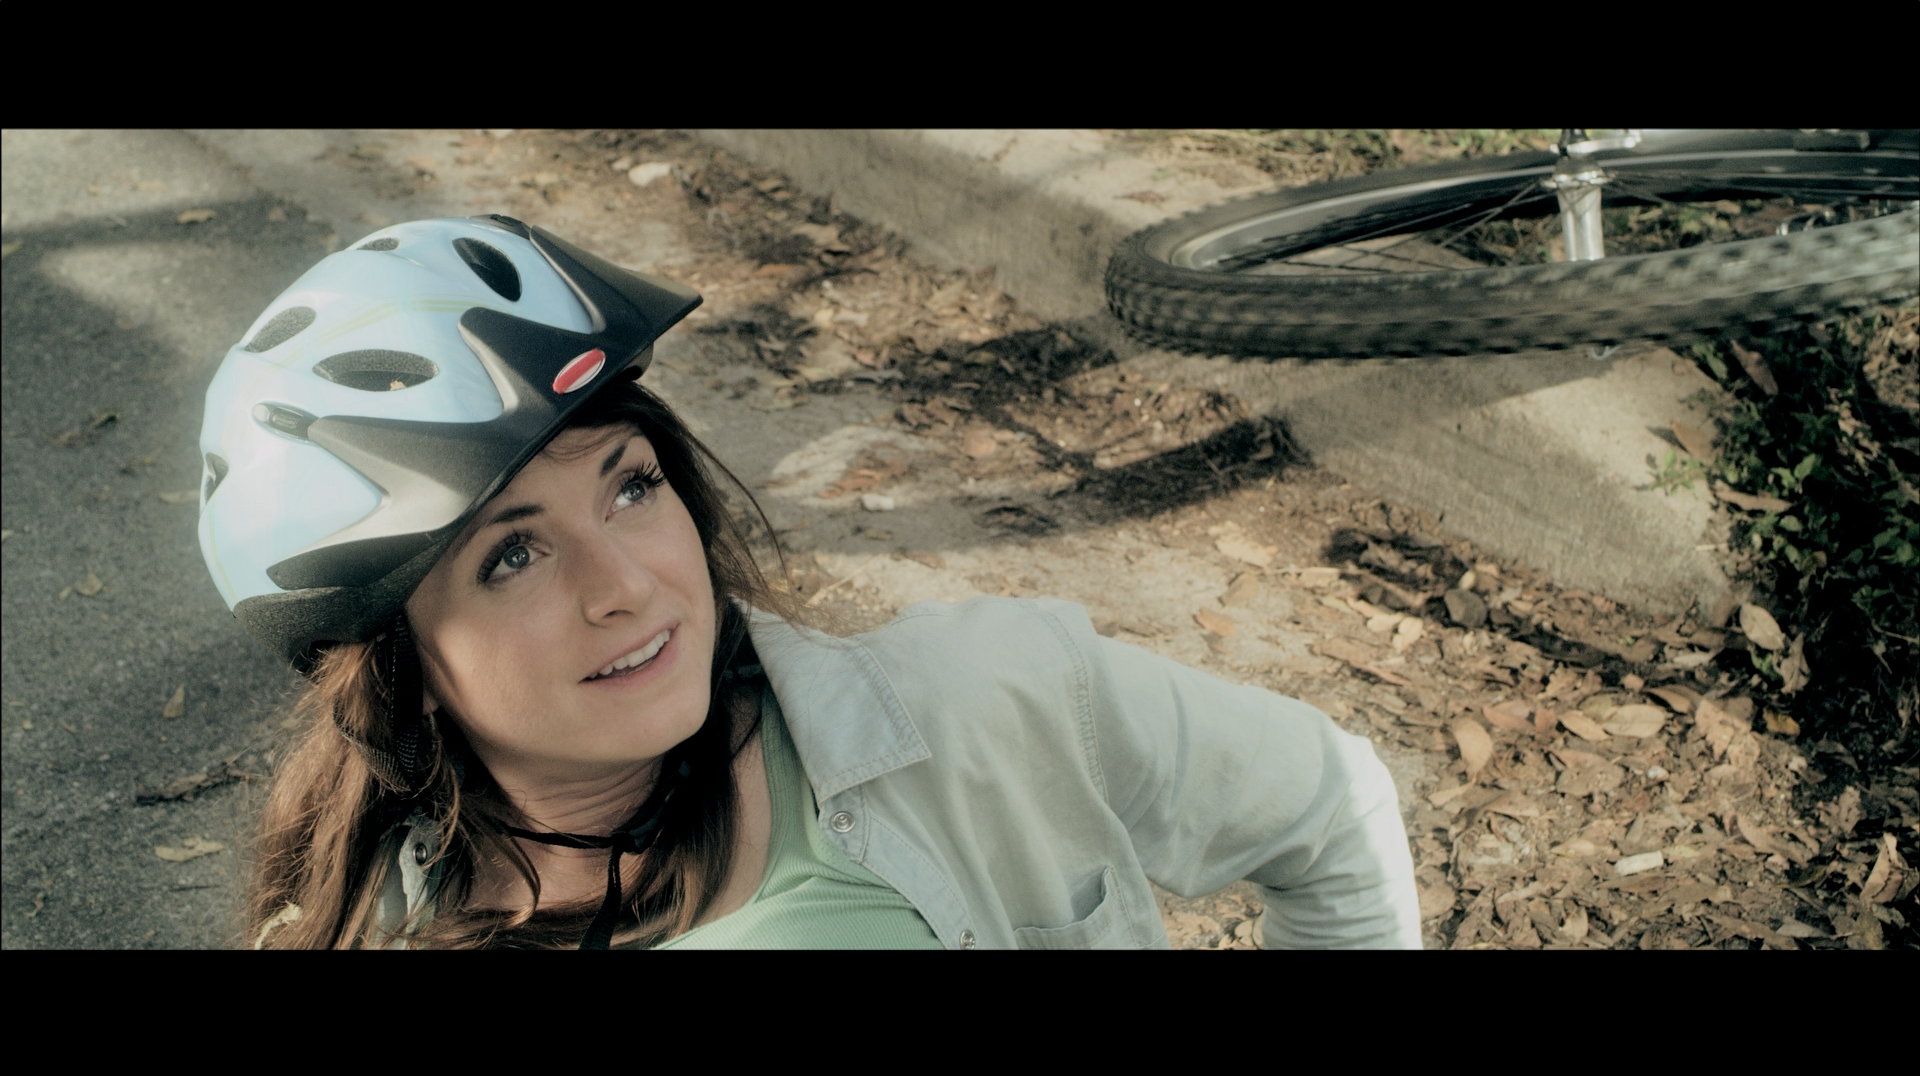 FIRST BIKE     Film is currently private by request (email info@soundnoodle for link)